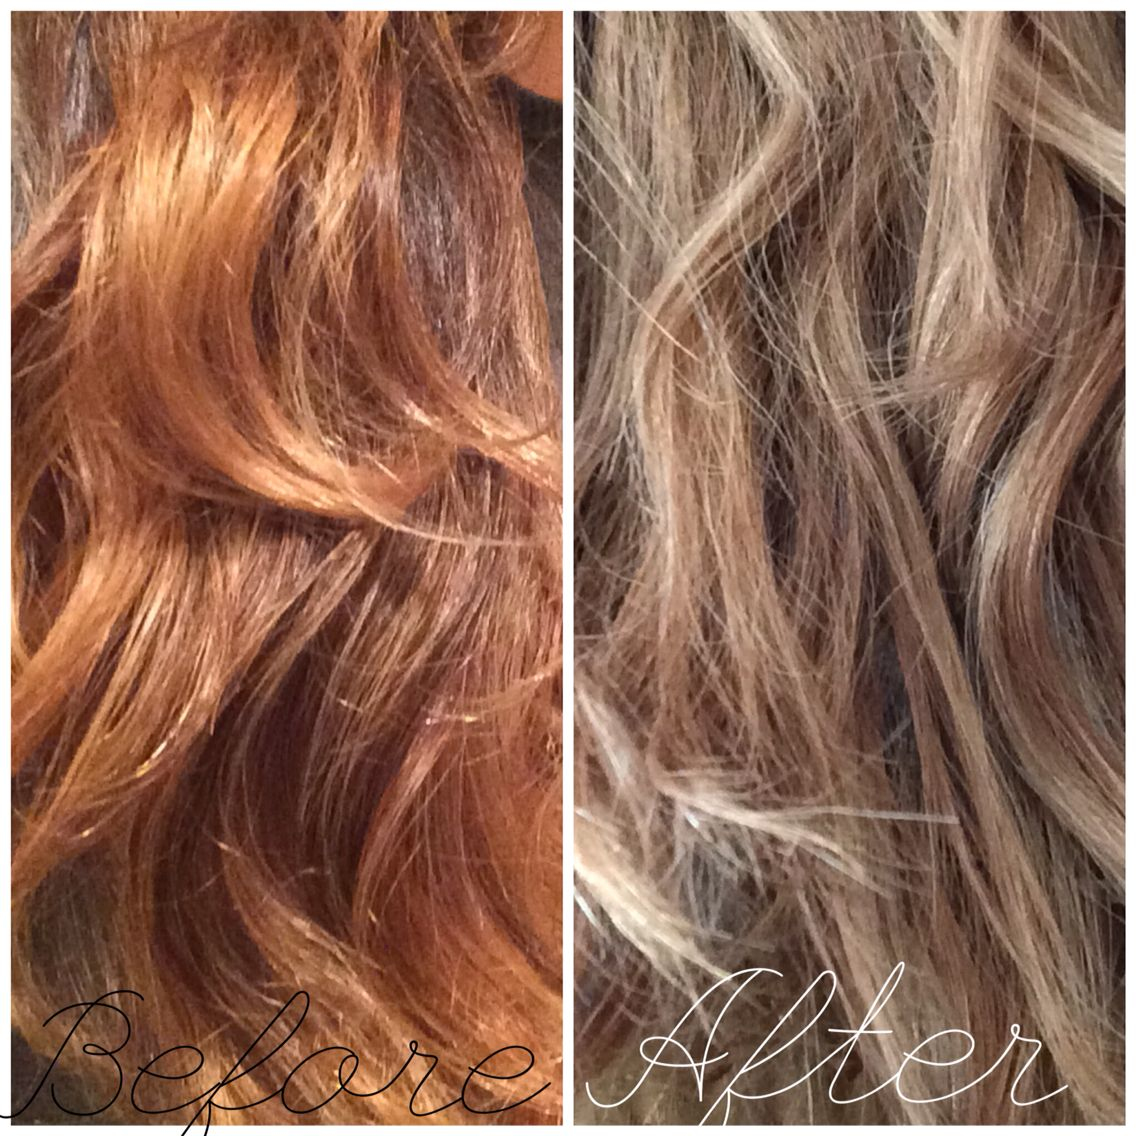 I Diy Toned My Hair With Wella T18 With 20 Volume Developer To Freshen Up My Ombre Wella Color Charm Toner Wella Color Charm Wella Toner T18